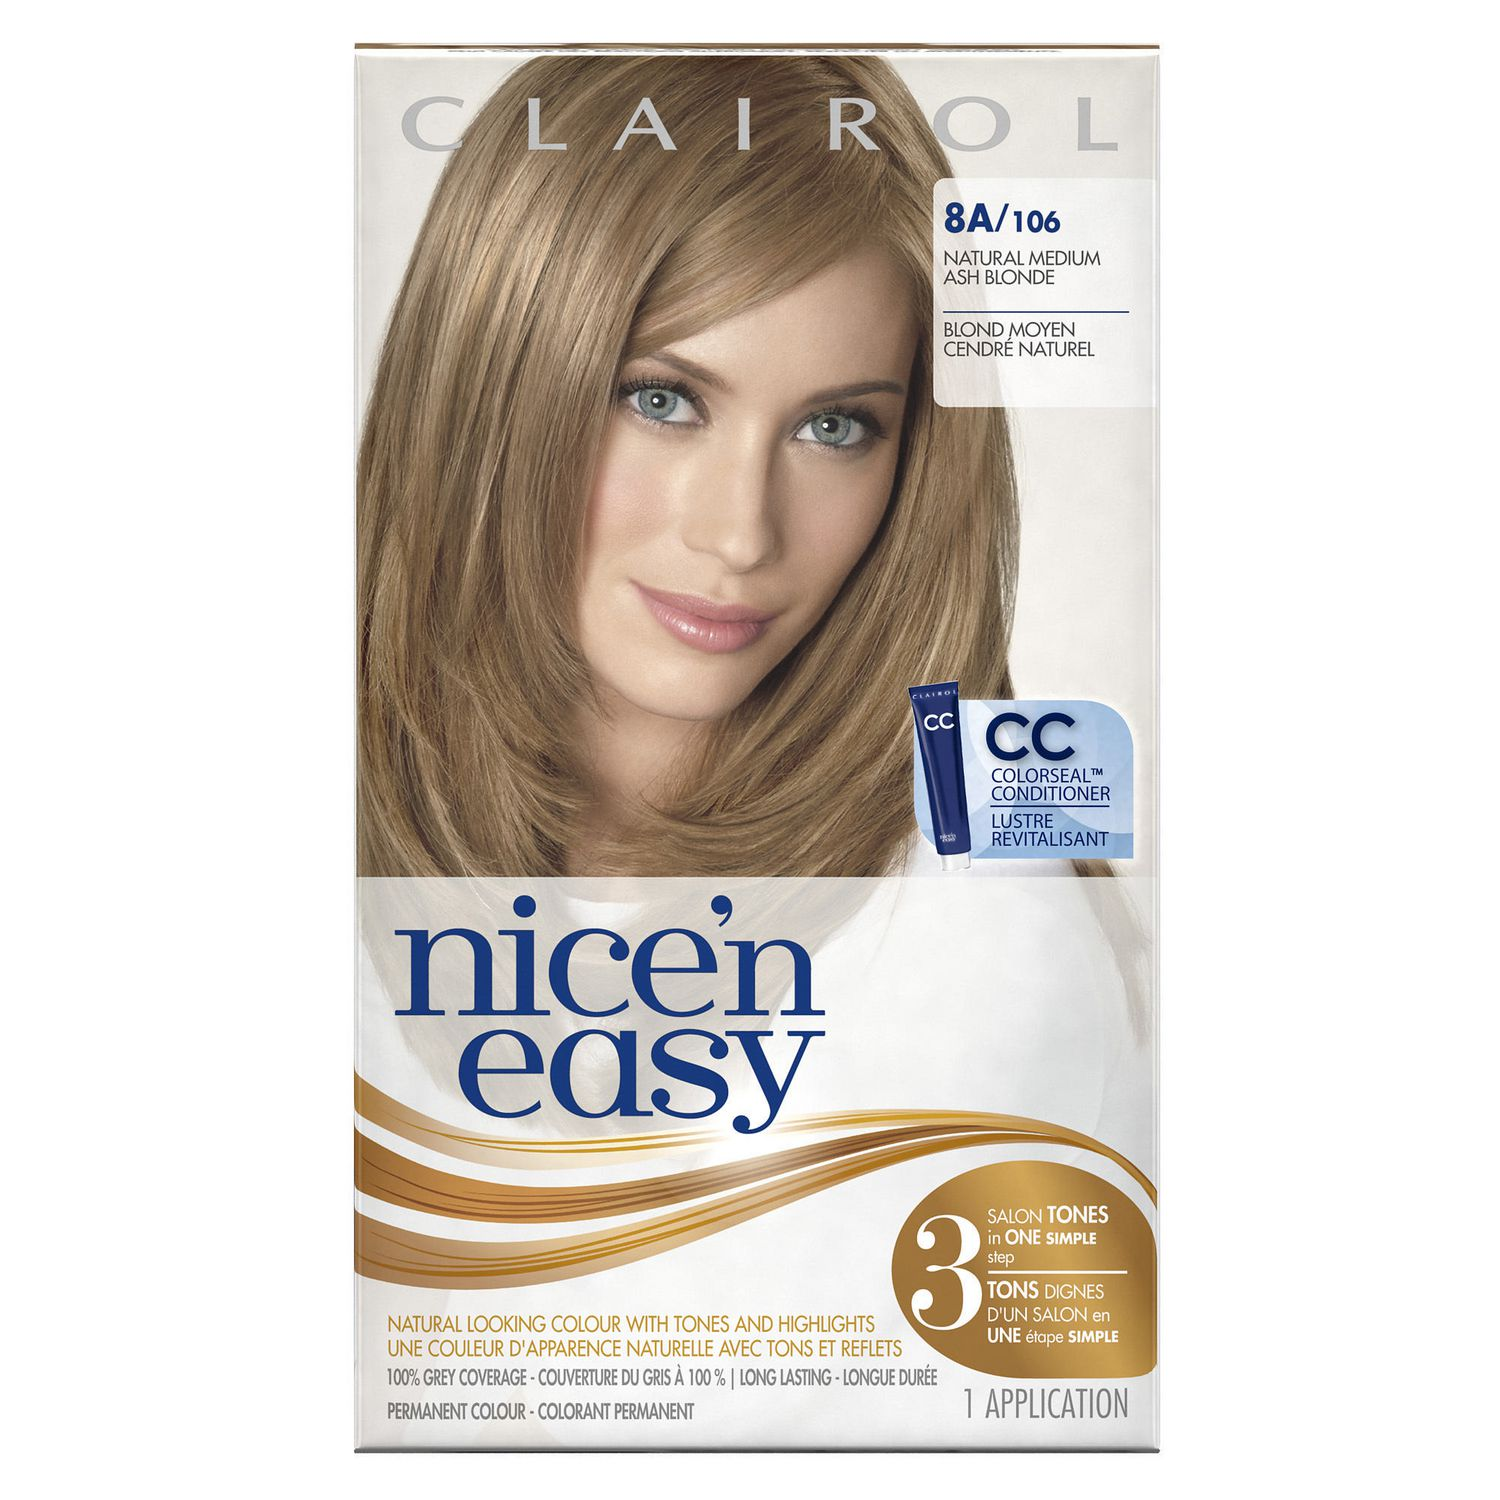 Clairol nicen easy hair colour 1 kit walmart canada solutioingenieria Gallery